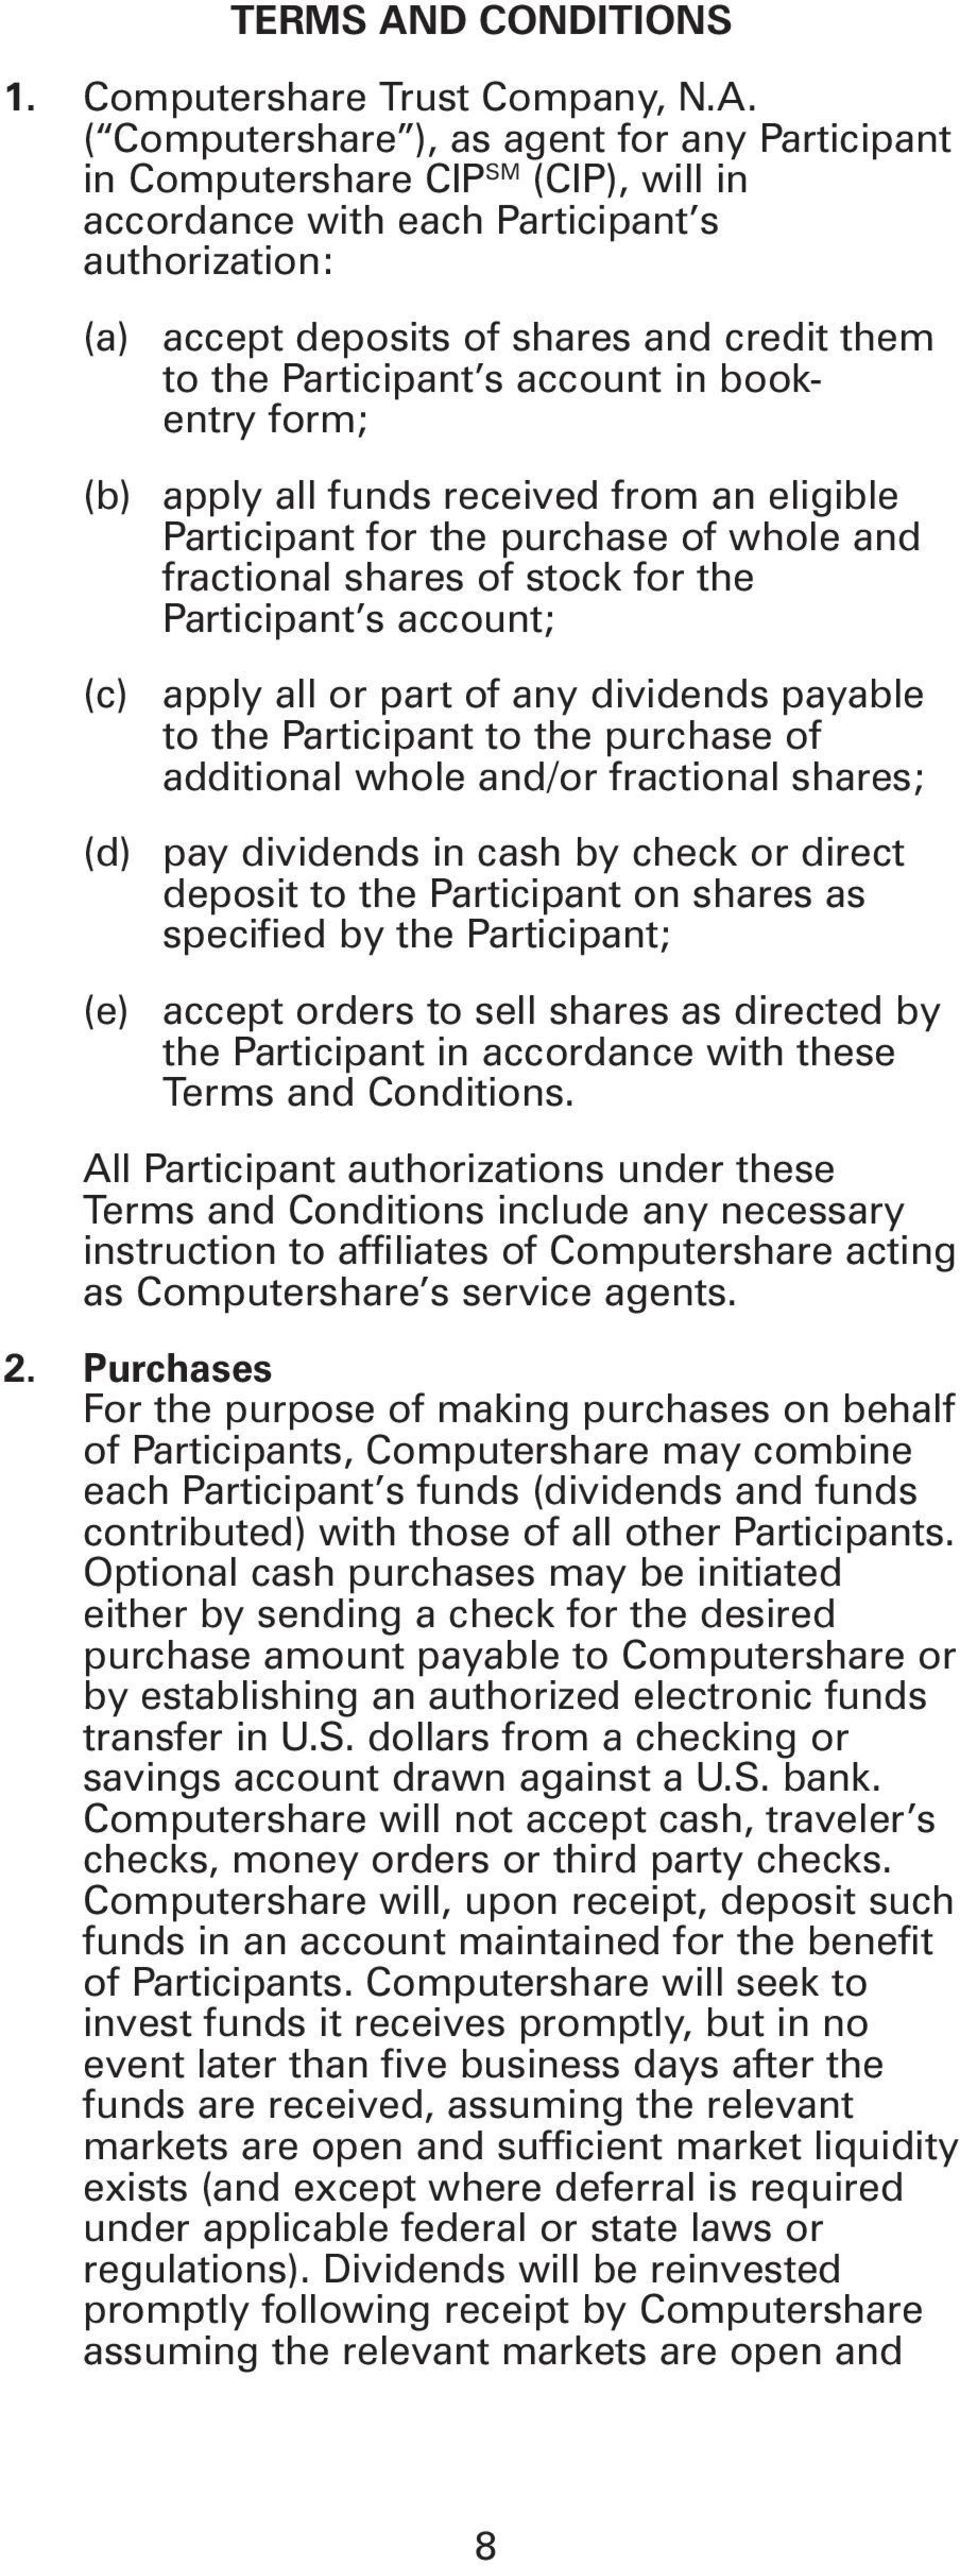 ( Computershare ), as agent for any Participant in Computershare CIP SM (CIP), will in accordance with each Participant s authorization: (a) (b) (c) (d) (e) accept deposits of shares and credit them